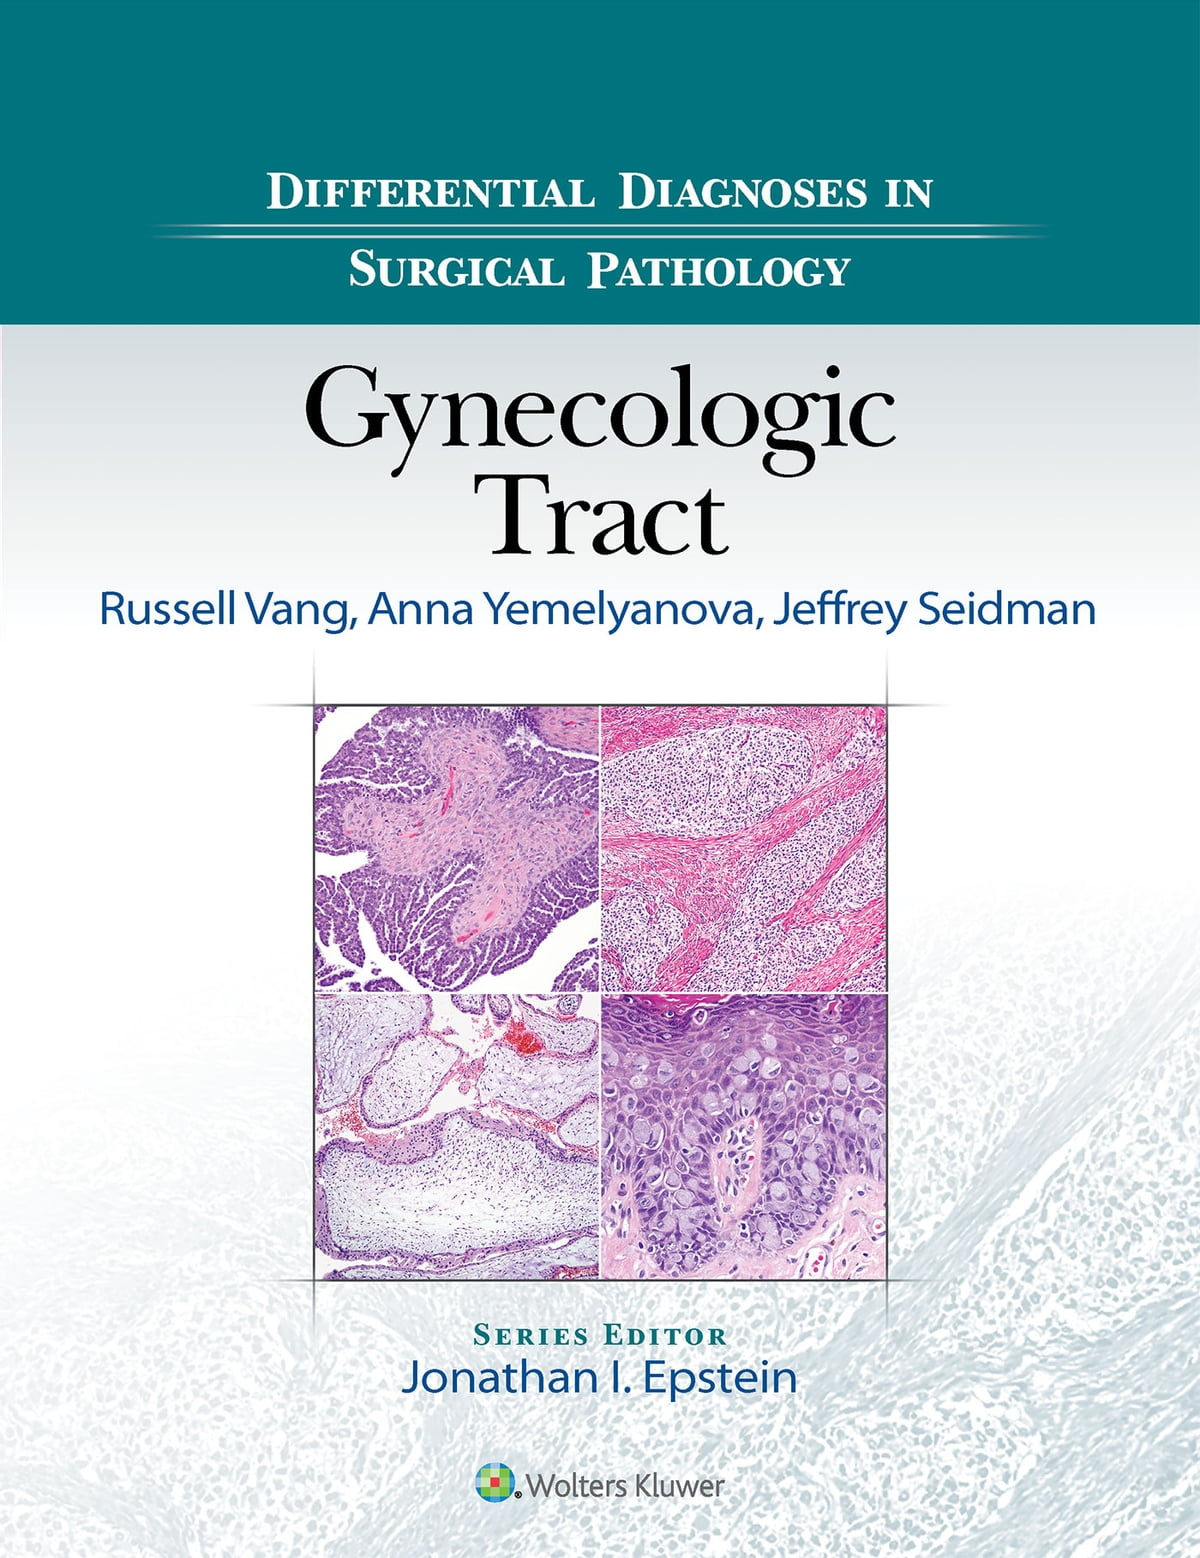 Differential Diagnoses In Surgical Pathology Gynecologic Tract Ebook By Russell Vang 9781496332967 Rakuten Kobo Greece